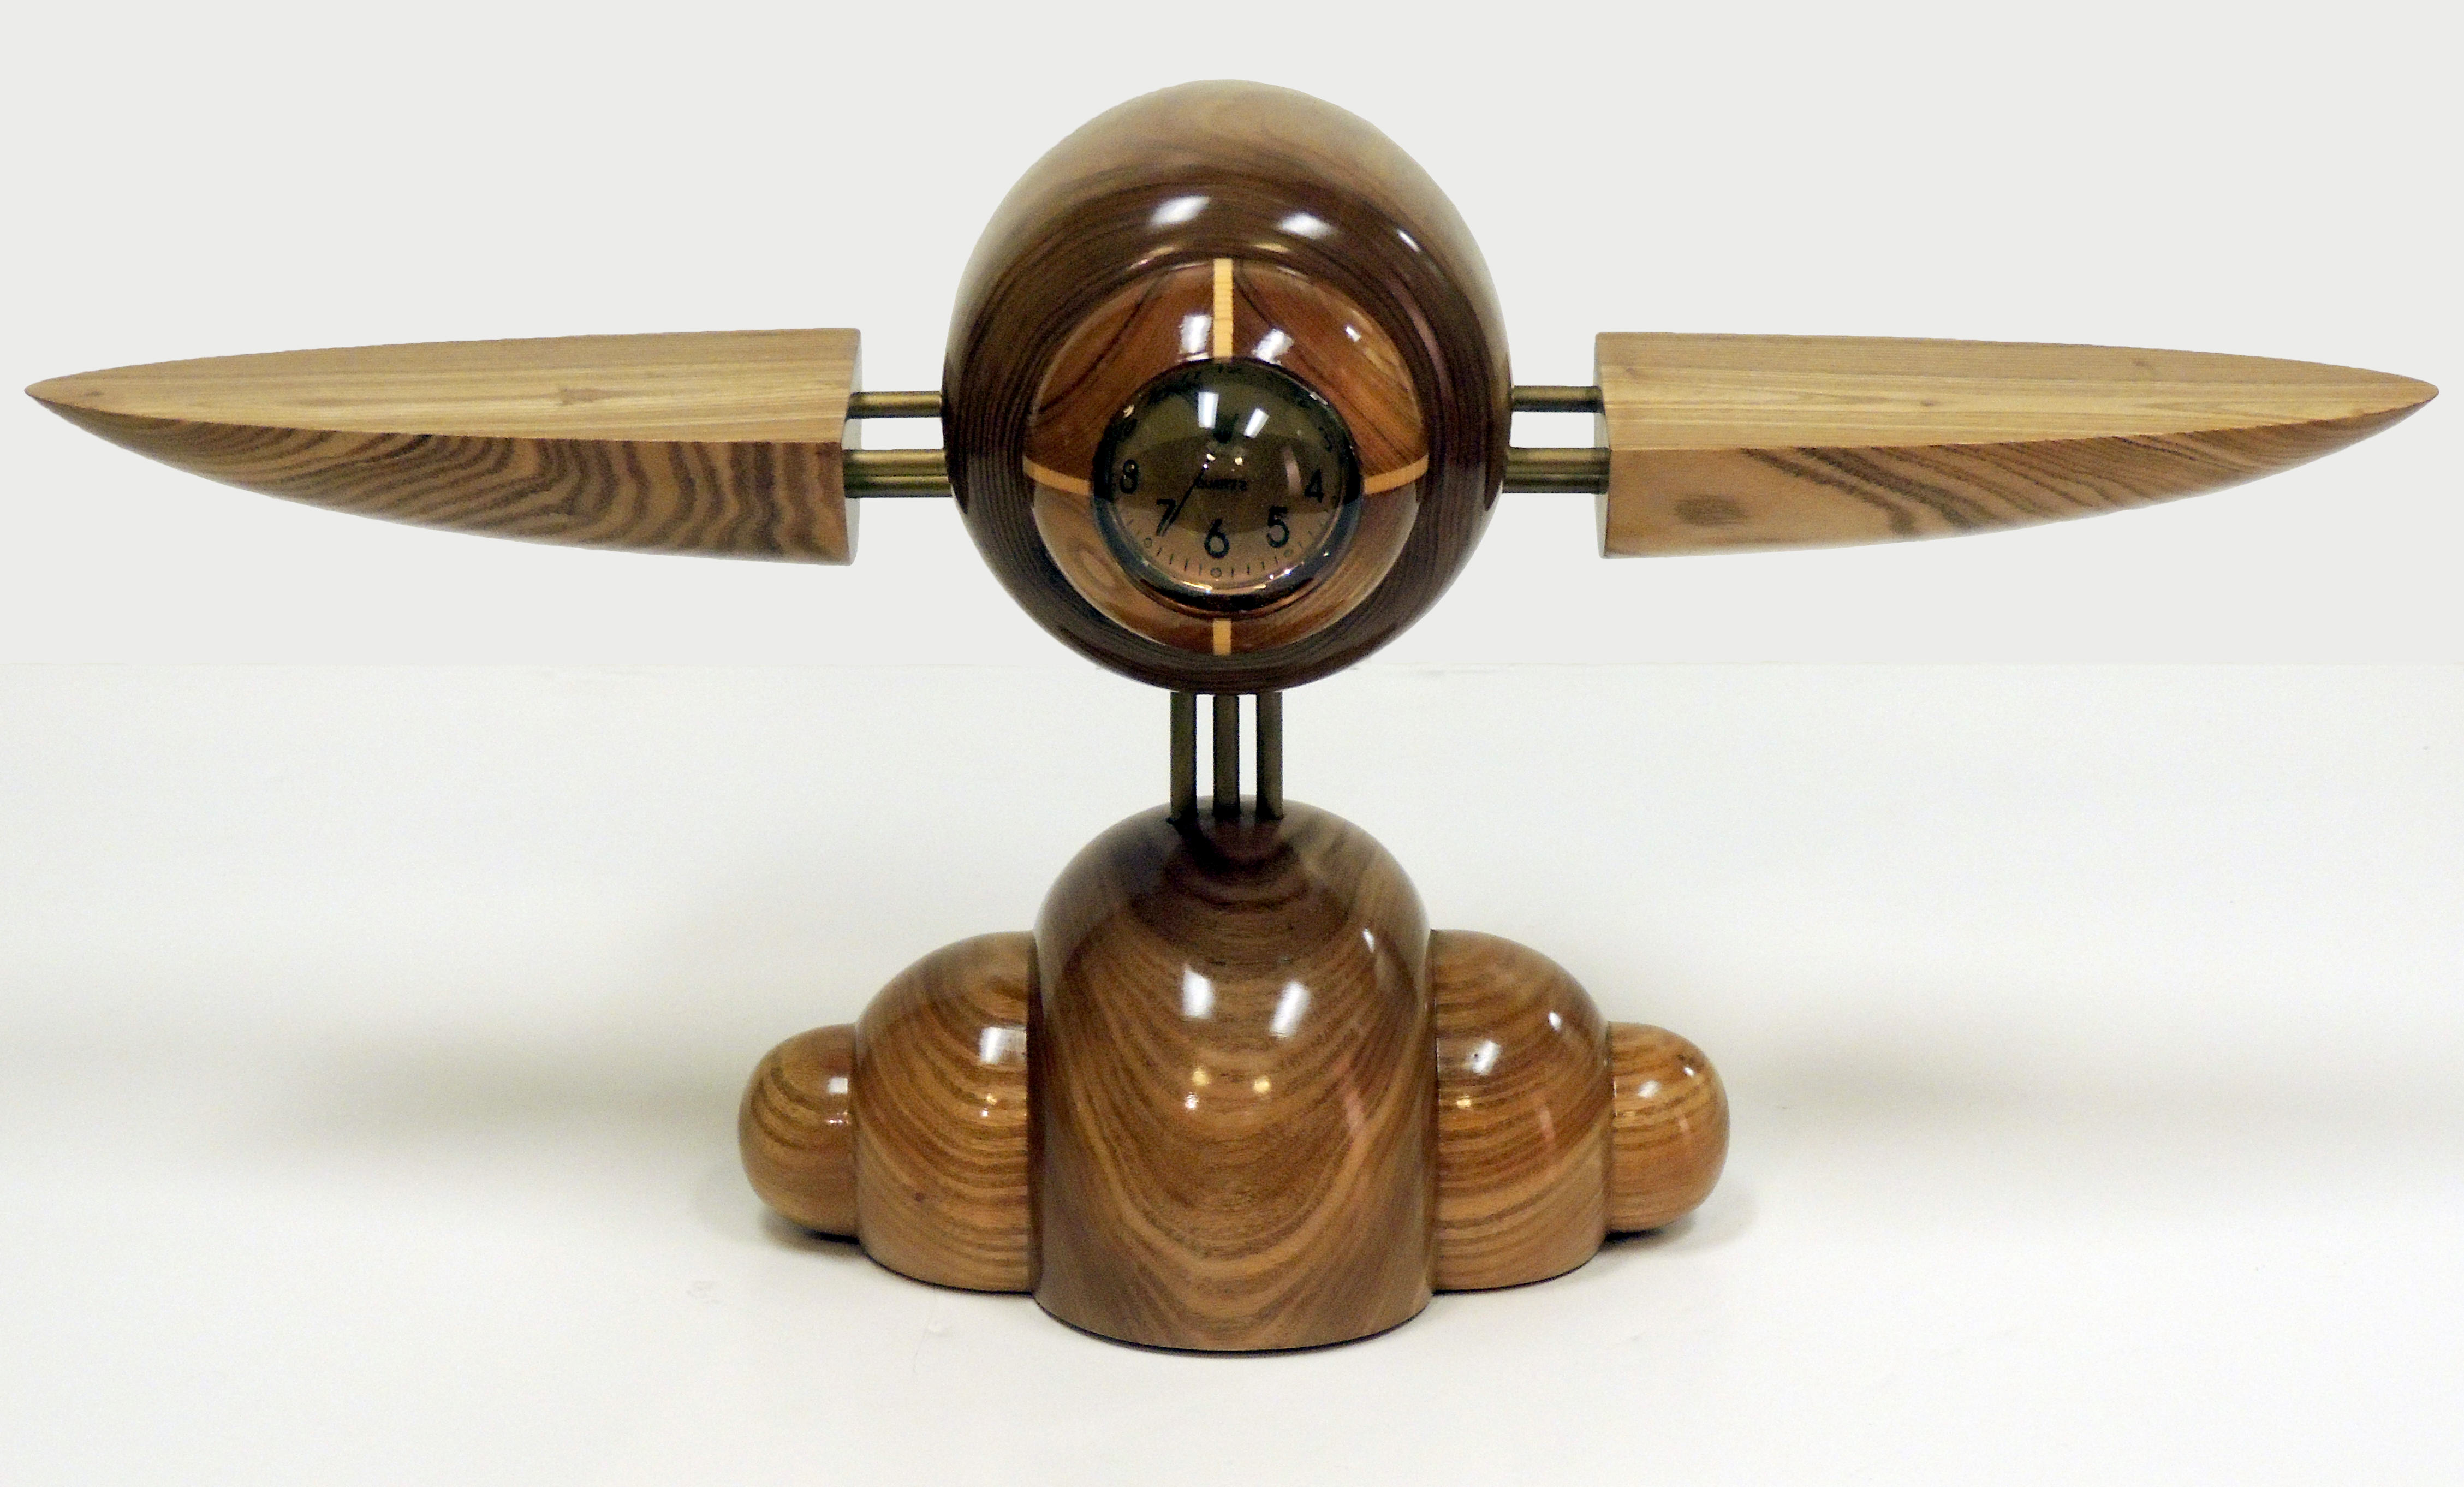 Tom Hawley | TEMPUS VOLARE I | spalt maple, walnut, brass, clear epoxy resin lens, Seiko quartz clock | 16 x 32 x 12"